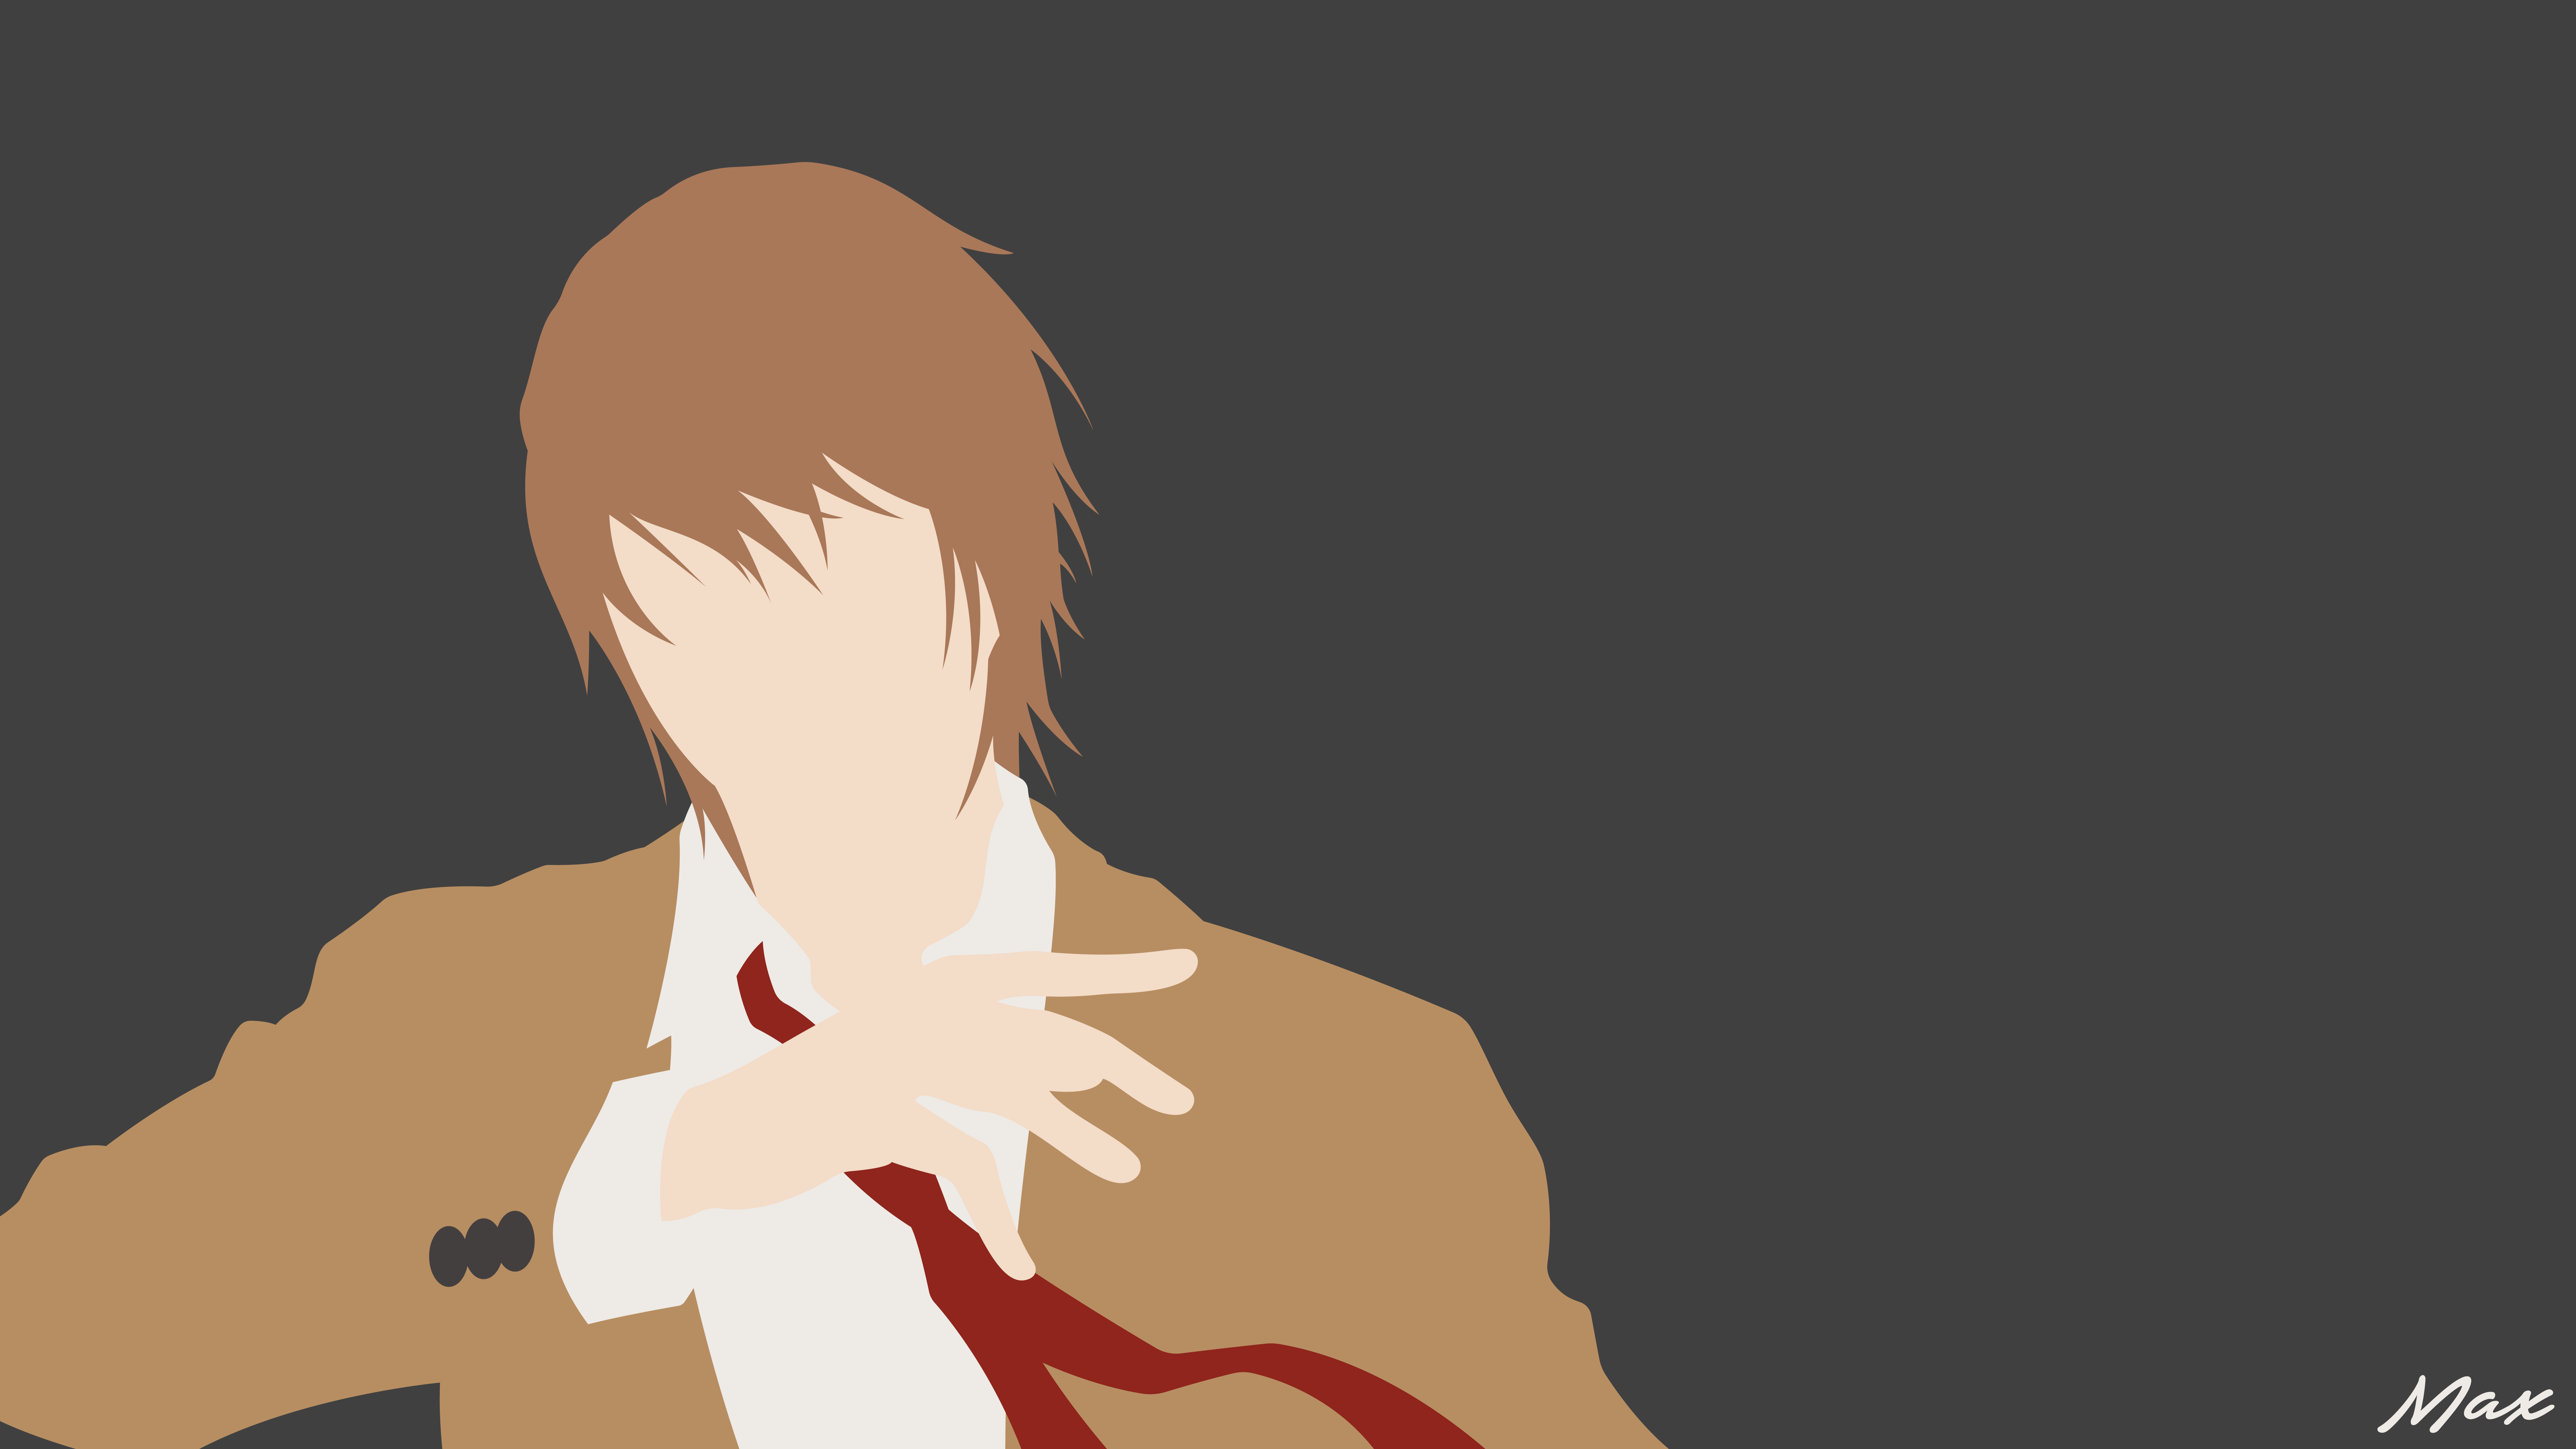 Anime Light Yagami Brown Hair Death Note Boy Tie